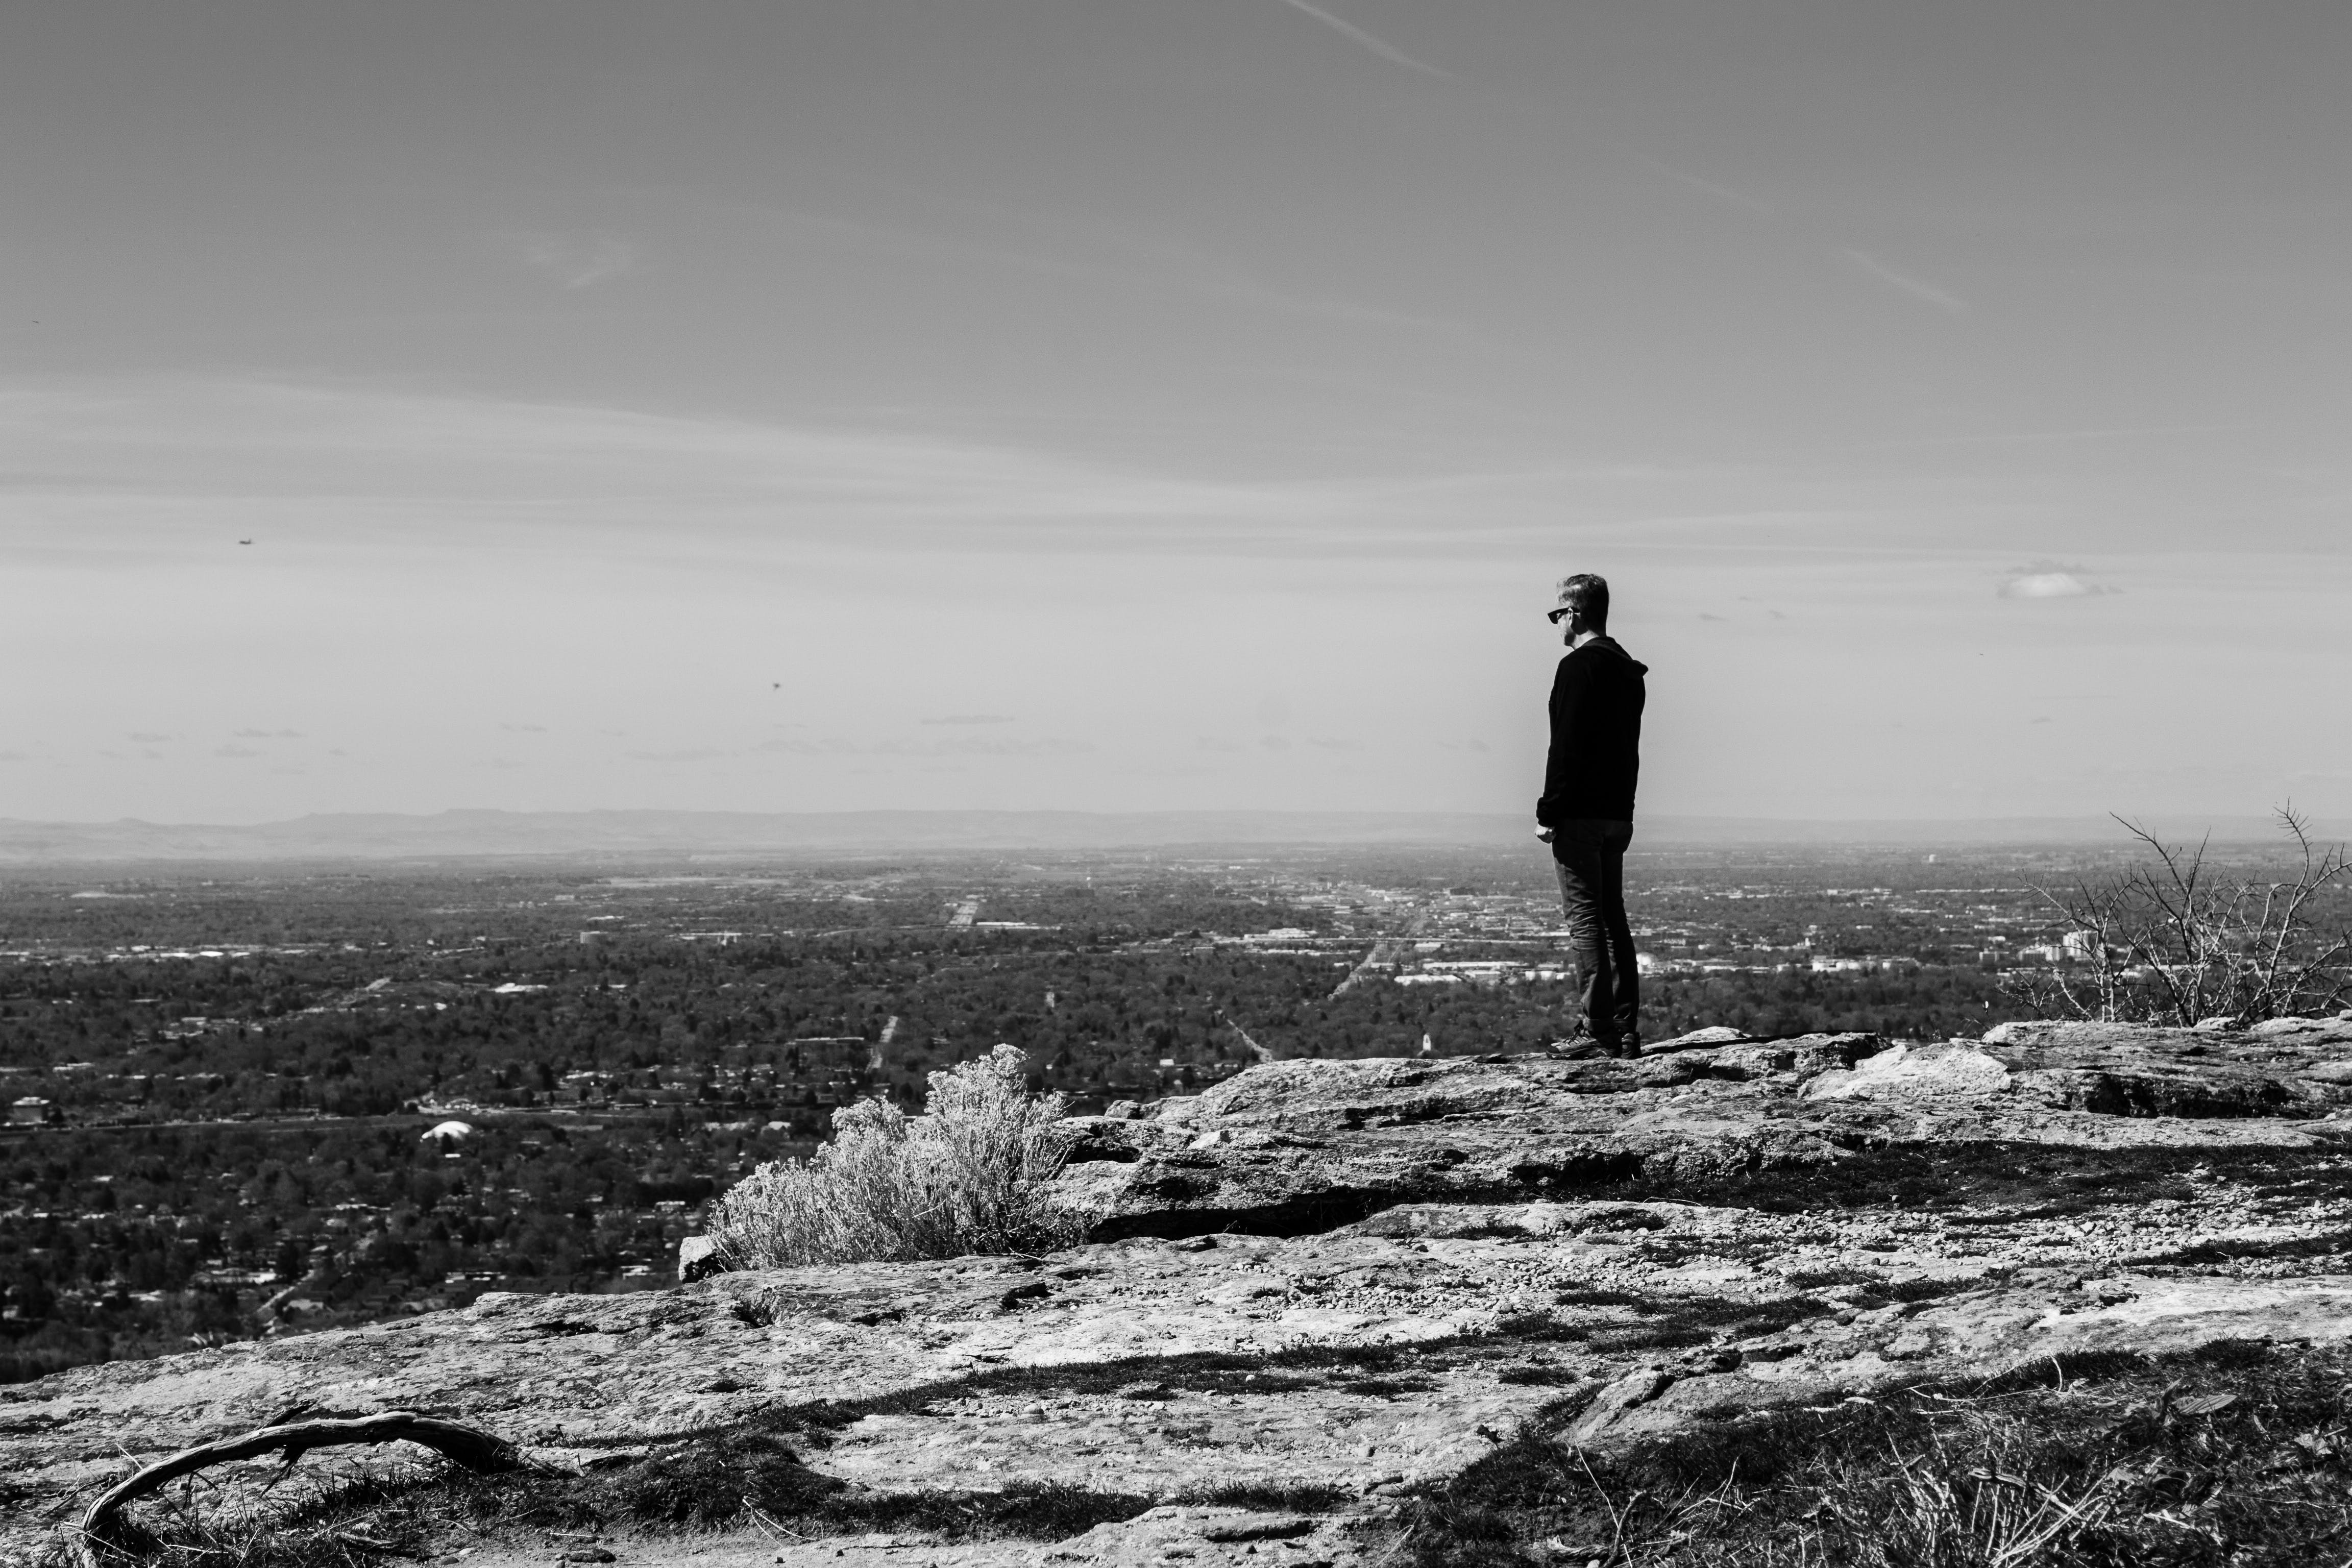 Greyscale Photography of Man Standing on Cliff in Front of Building